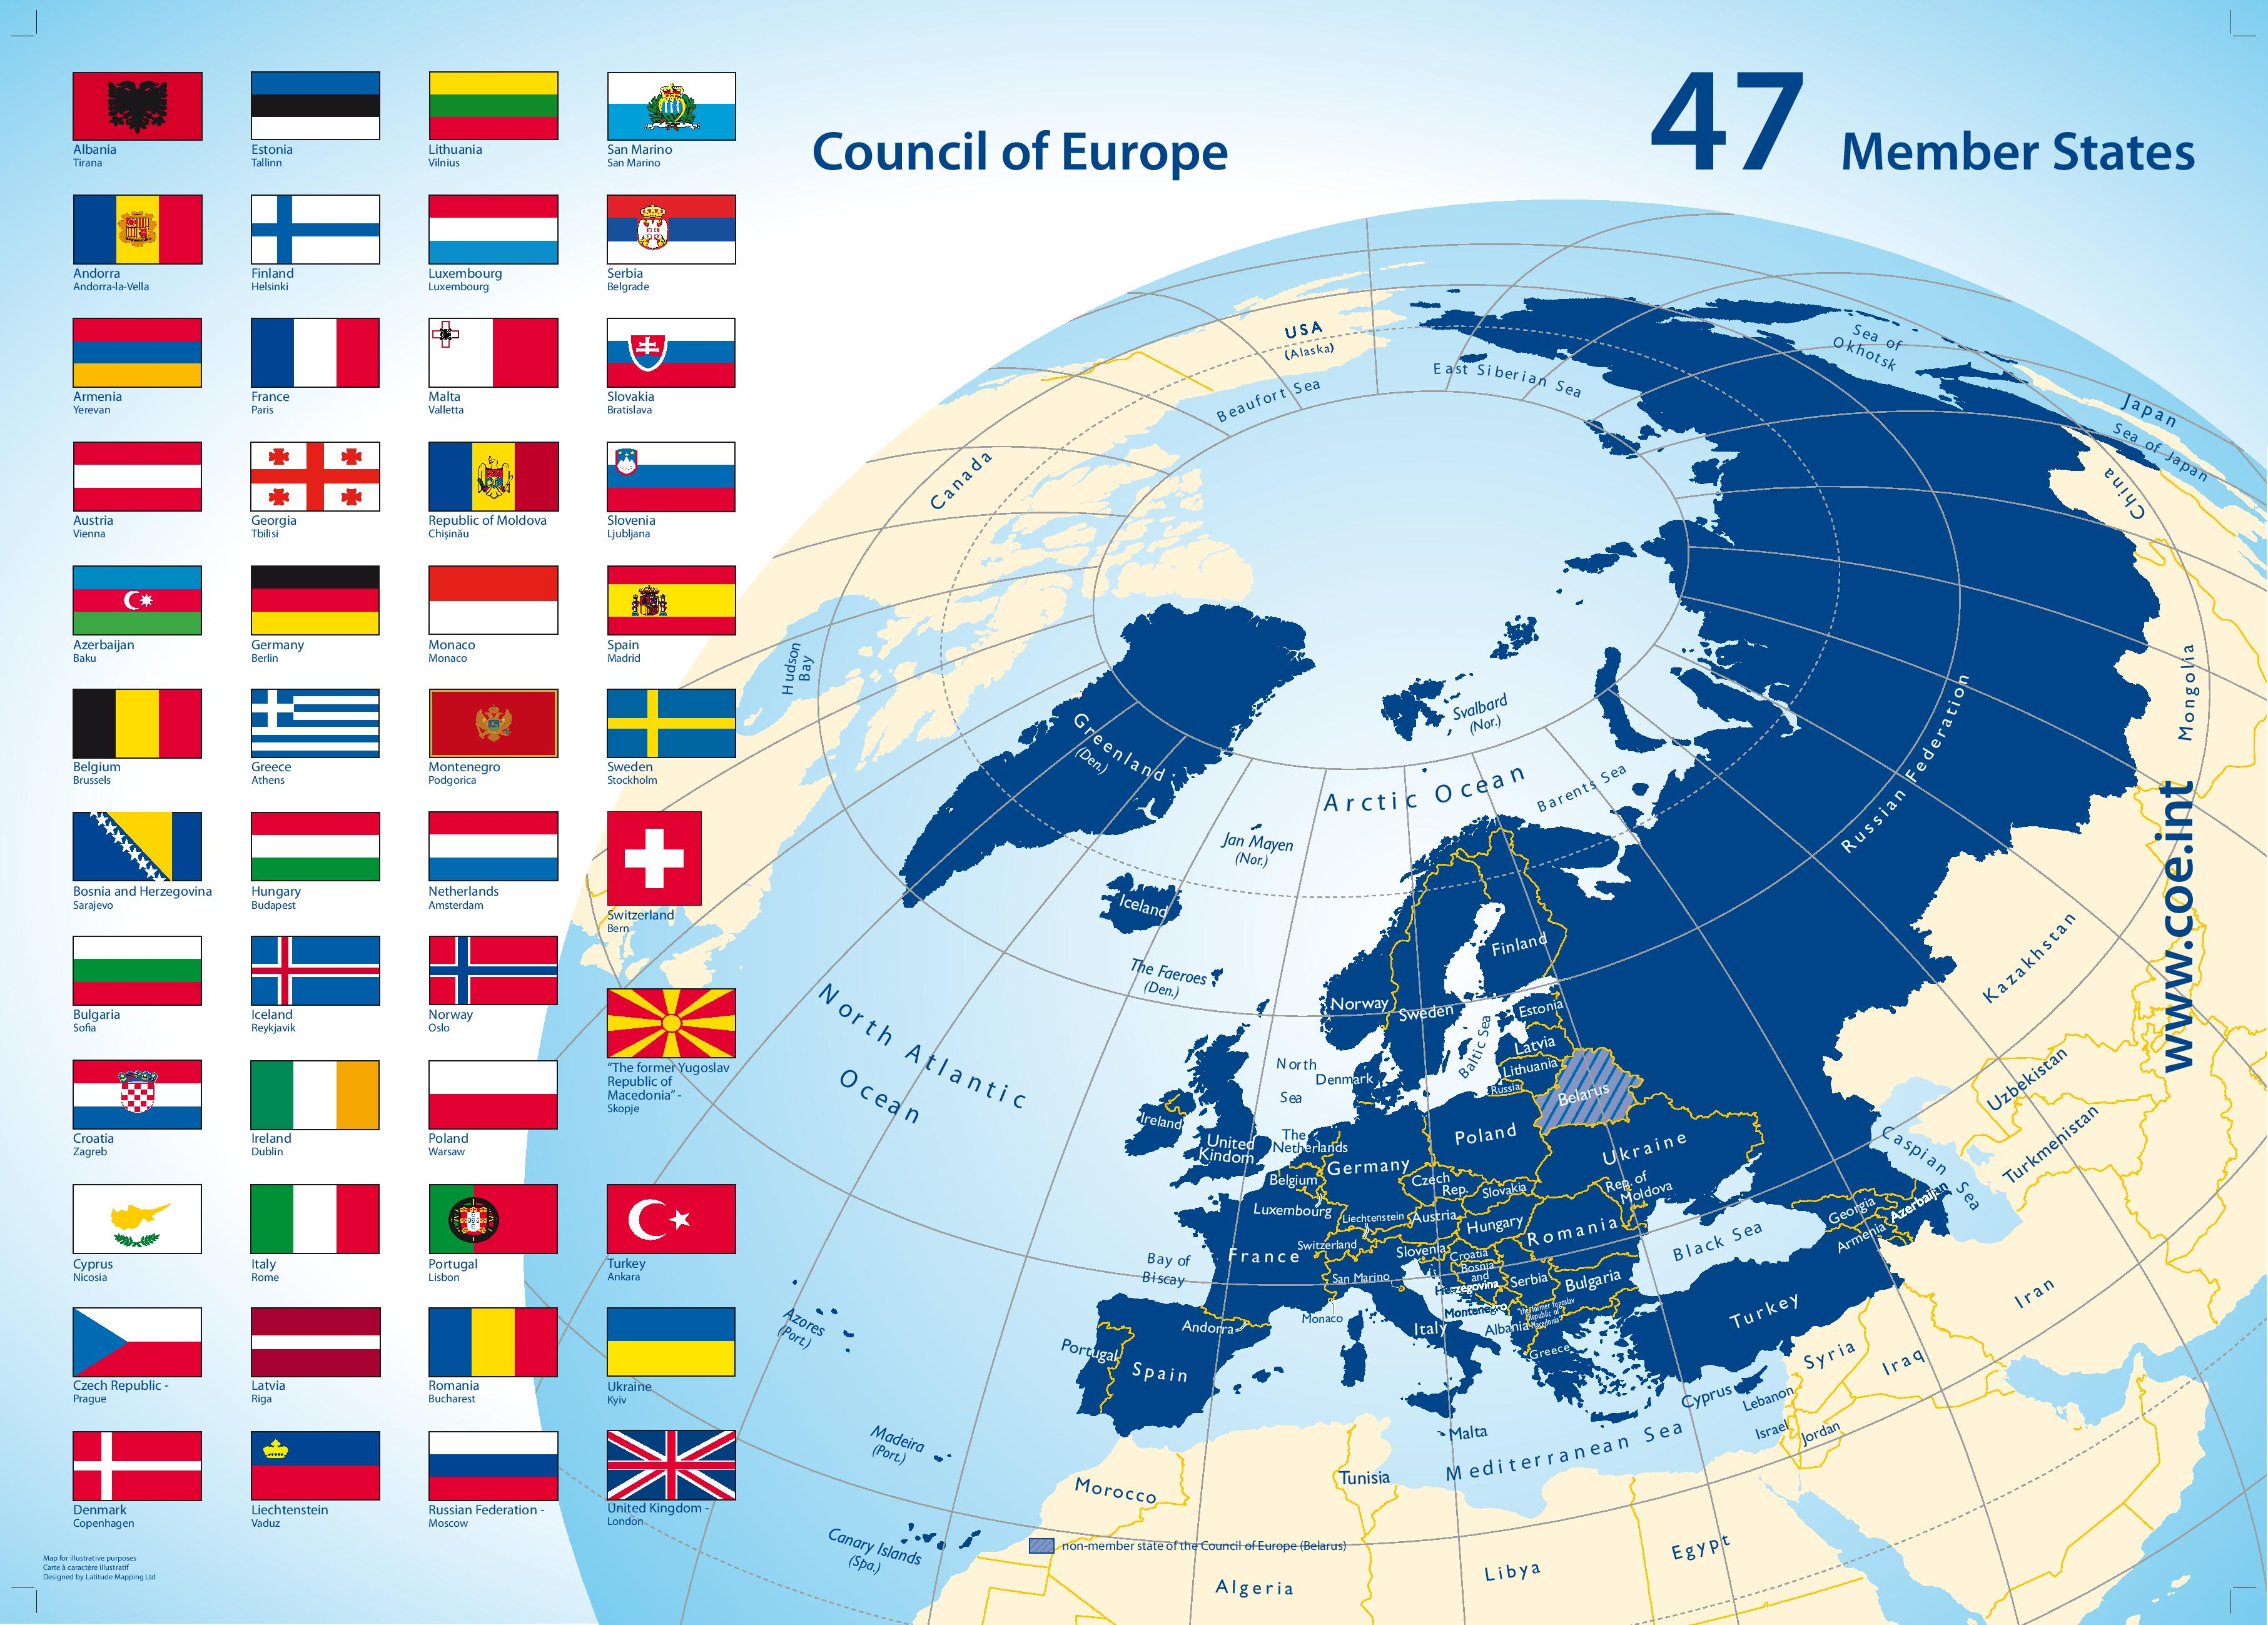 Map of the 47 Member States of the Council of Europe